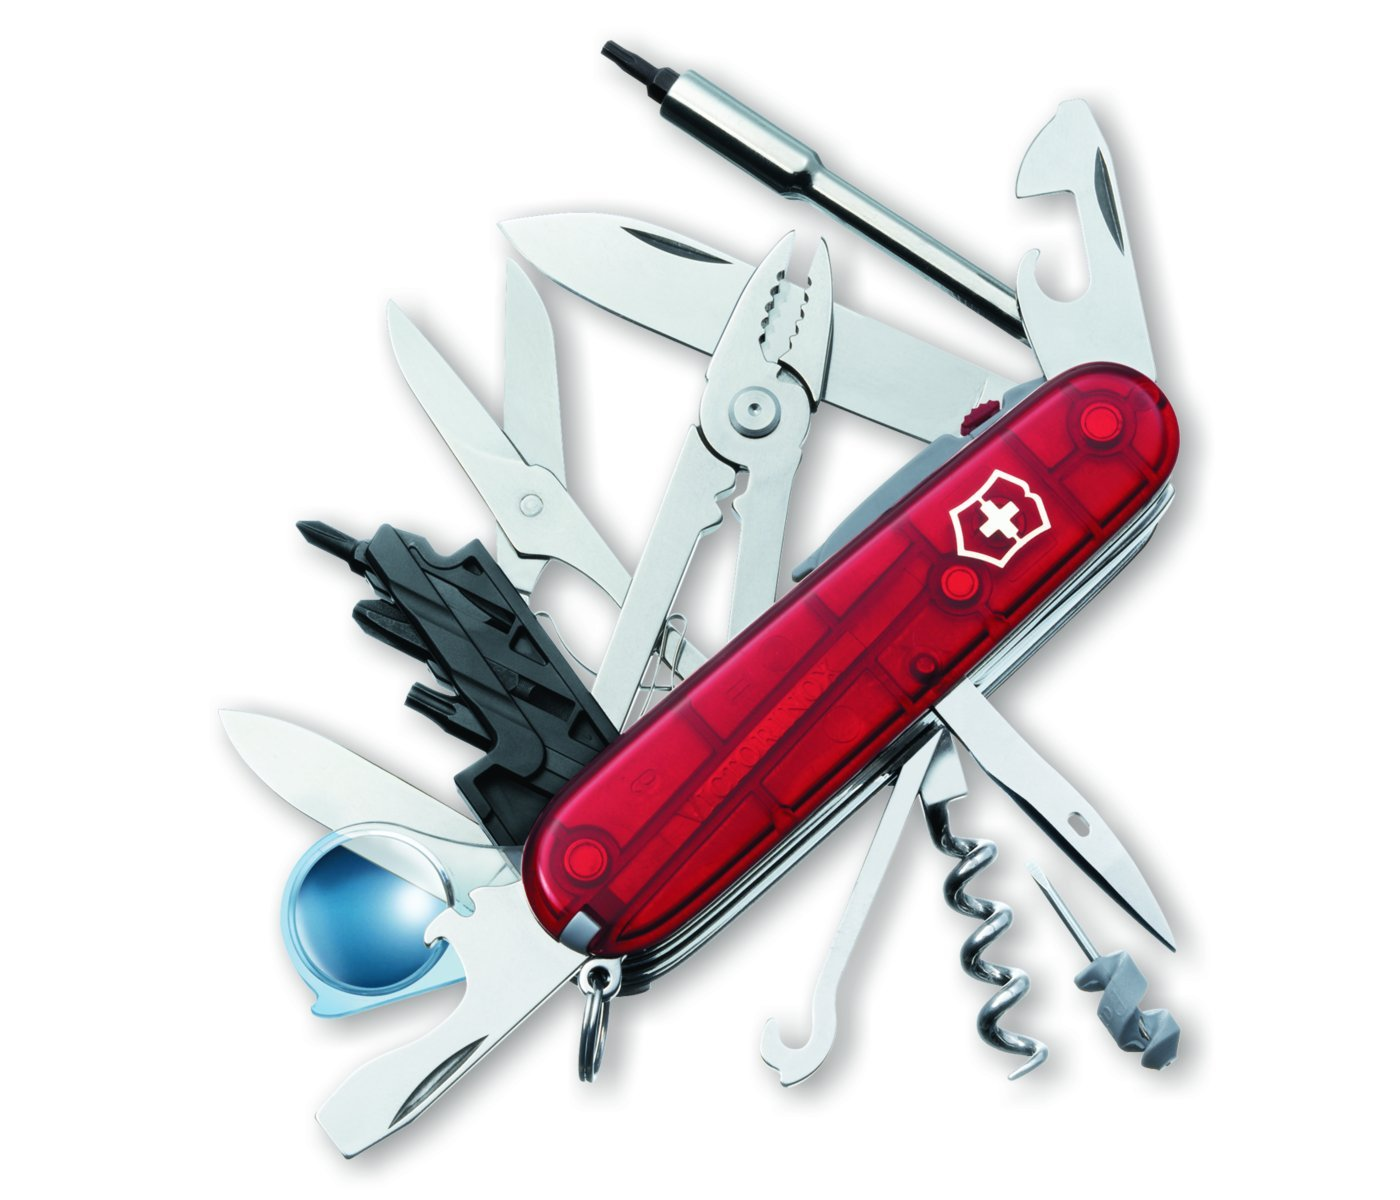 Amazon.com: Victorinox Cybertool lite translúcido Ruby Multi ...